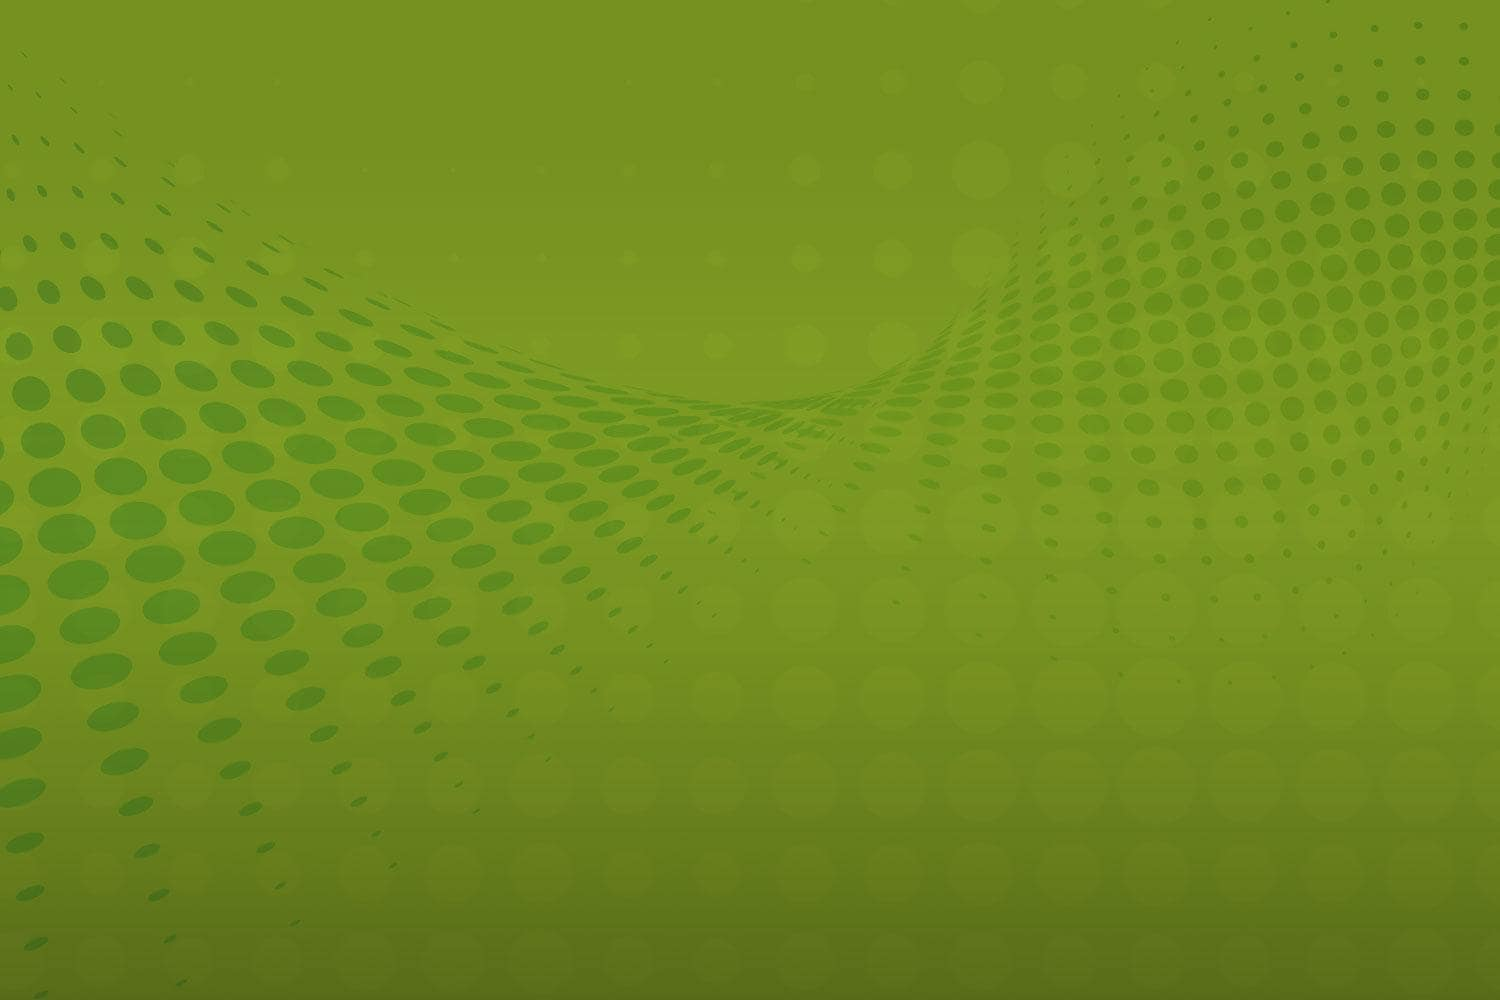 abstract-background-lime-greens